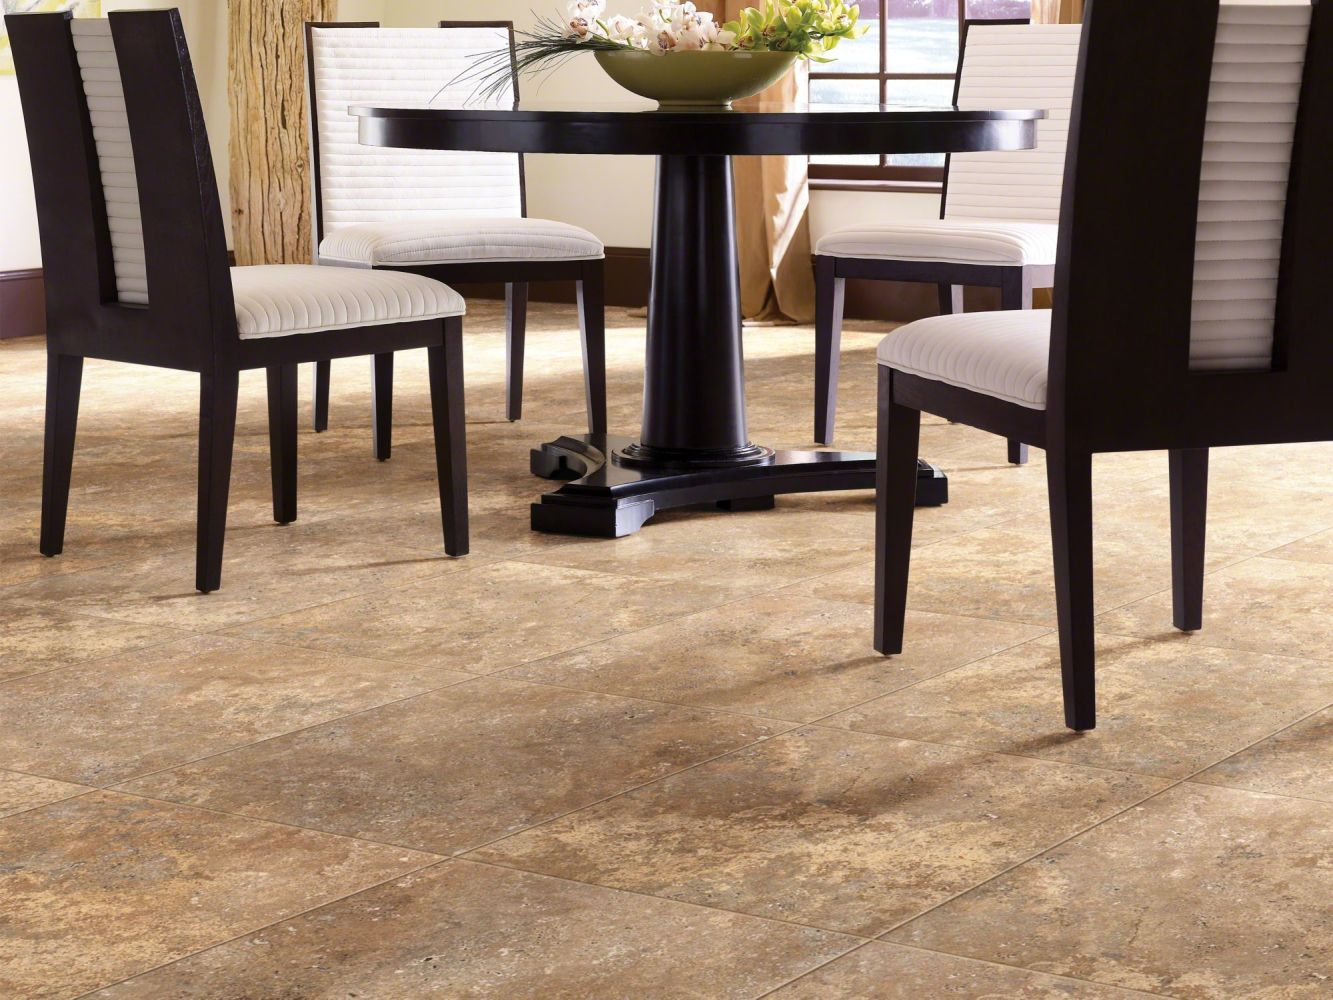 Shaw Floors Vinyl Residential Resort Tile Hot Cocoa 00750_0189V